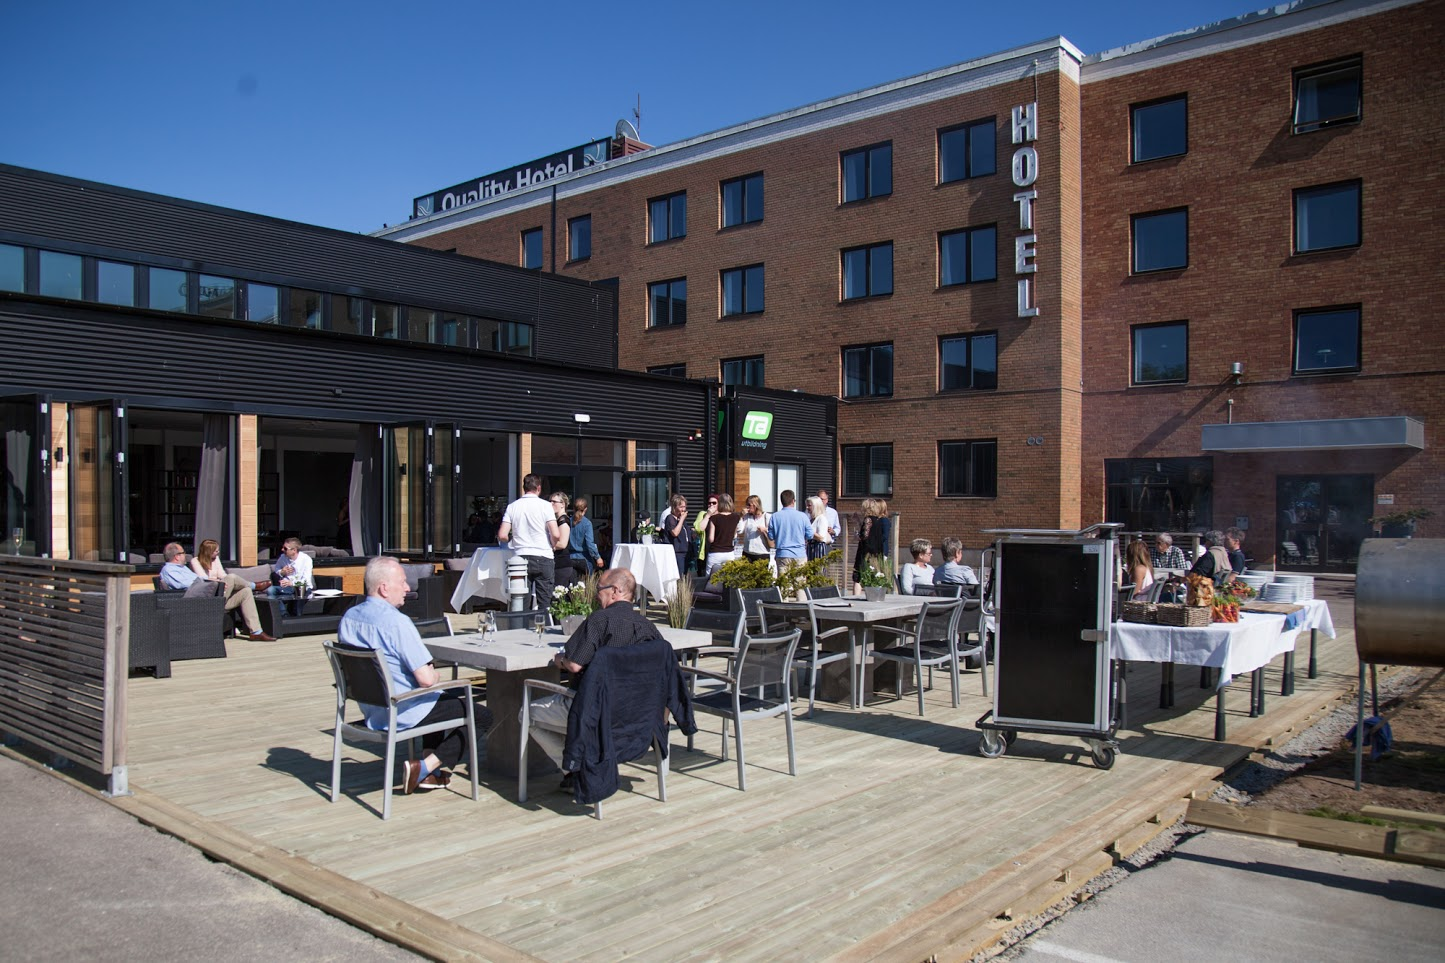 Quality Hotel Vänersborg - The restaurant offers breakfast, lunch and dinner. Here you can choose from traditional Swedish food, hamburgers, fish or vegetarian options.Contact:+46521-57 57 20q.vanersborg@choice.sehttp://www.qualityvanersborg.se/